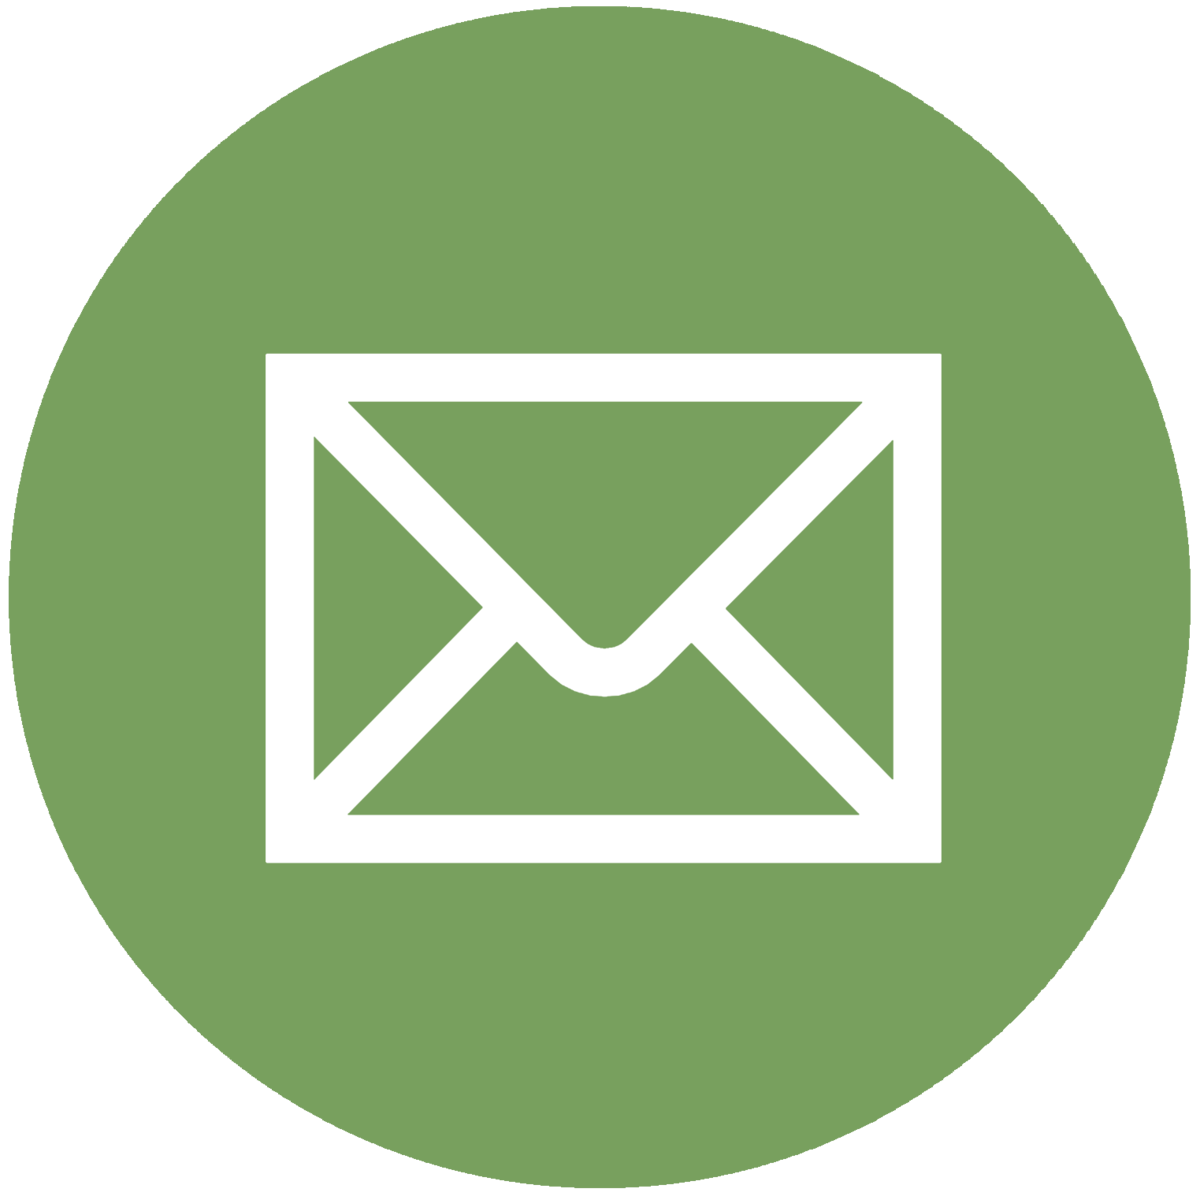 Download Icons Symbol Envelope Computer Mail Logo Email HQ.